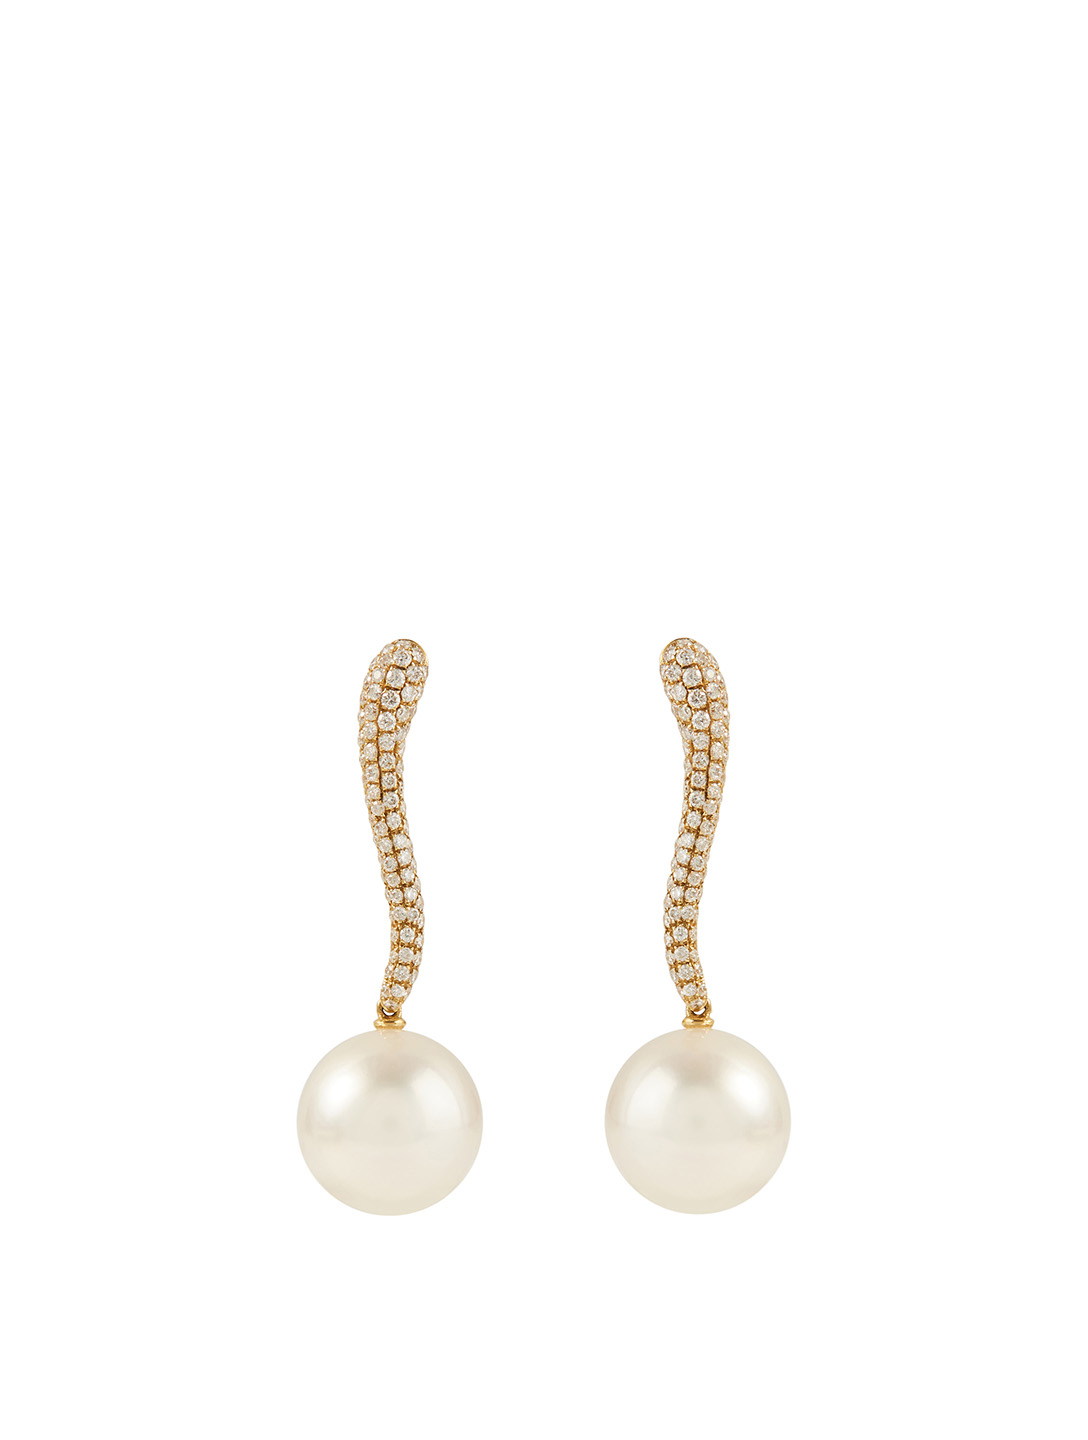 YOKO LONDON 18K White Gold Australian South Sea Pearl And Diamond Earrings Women's Metallic